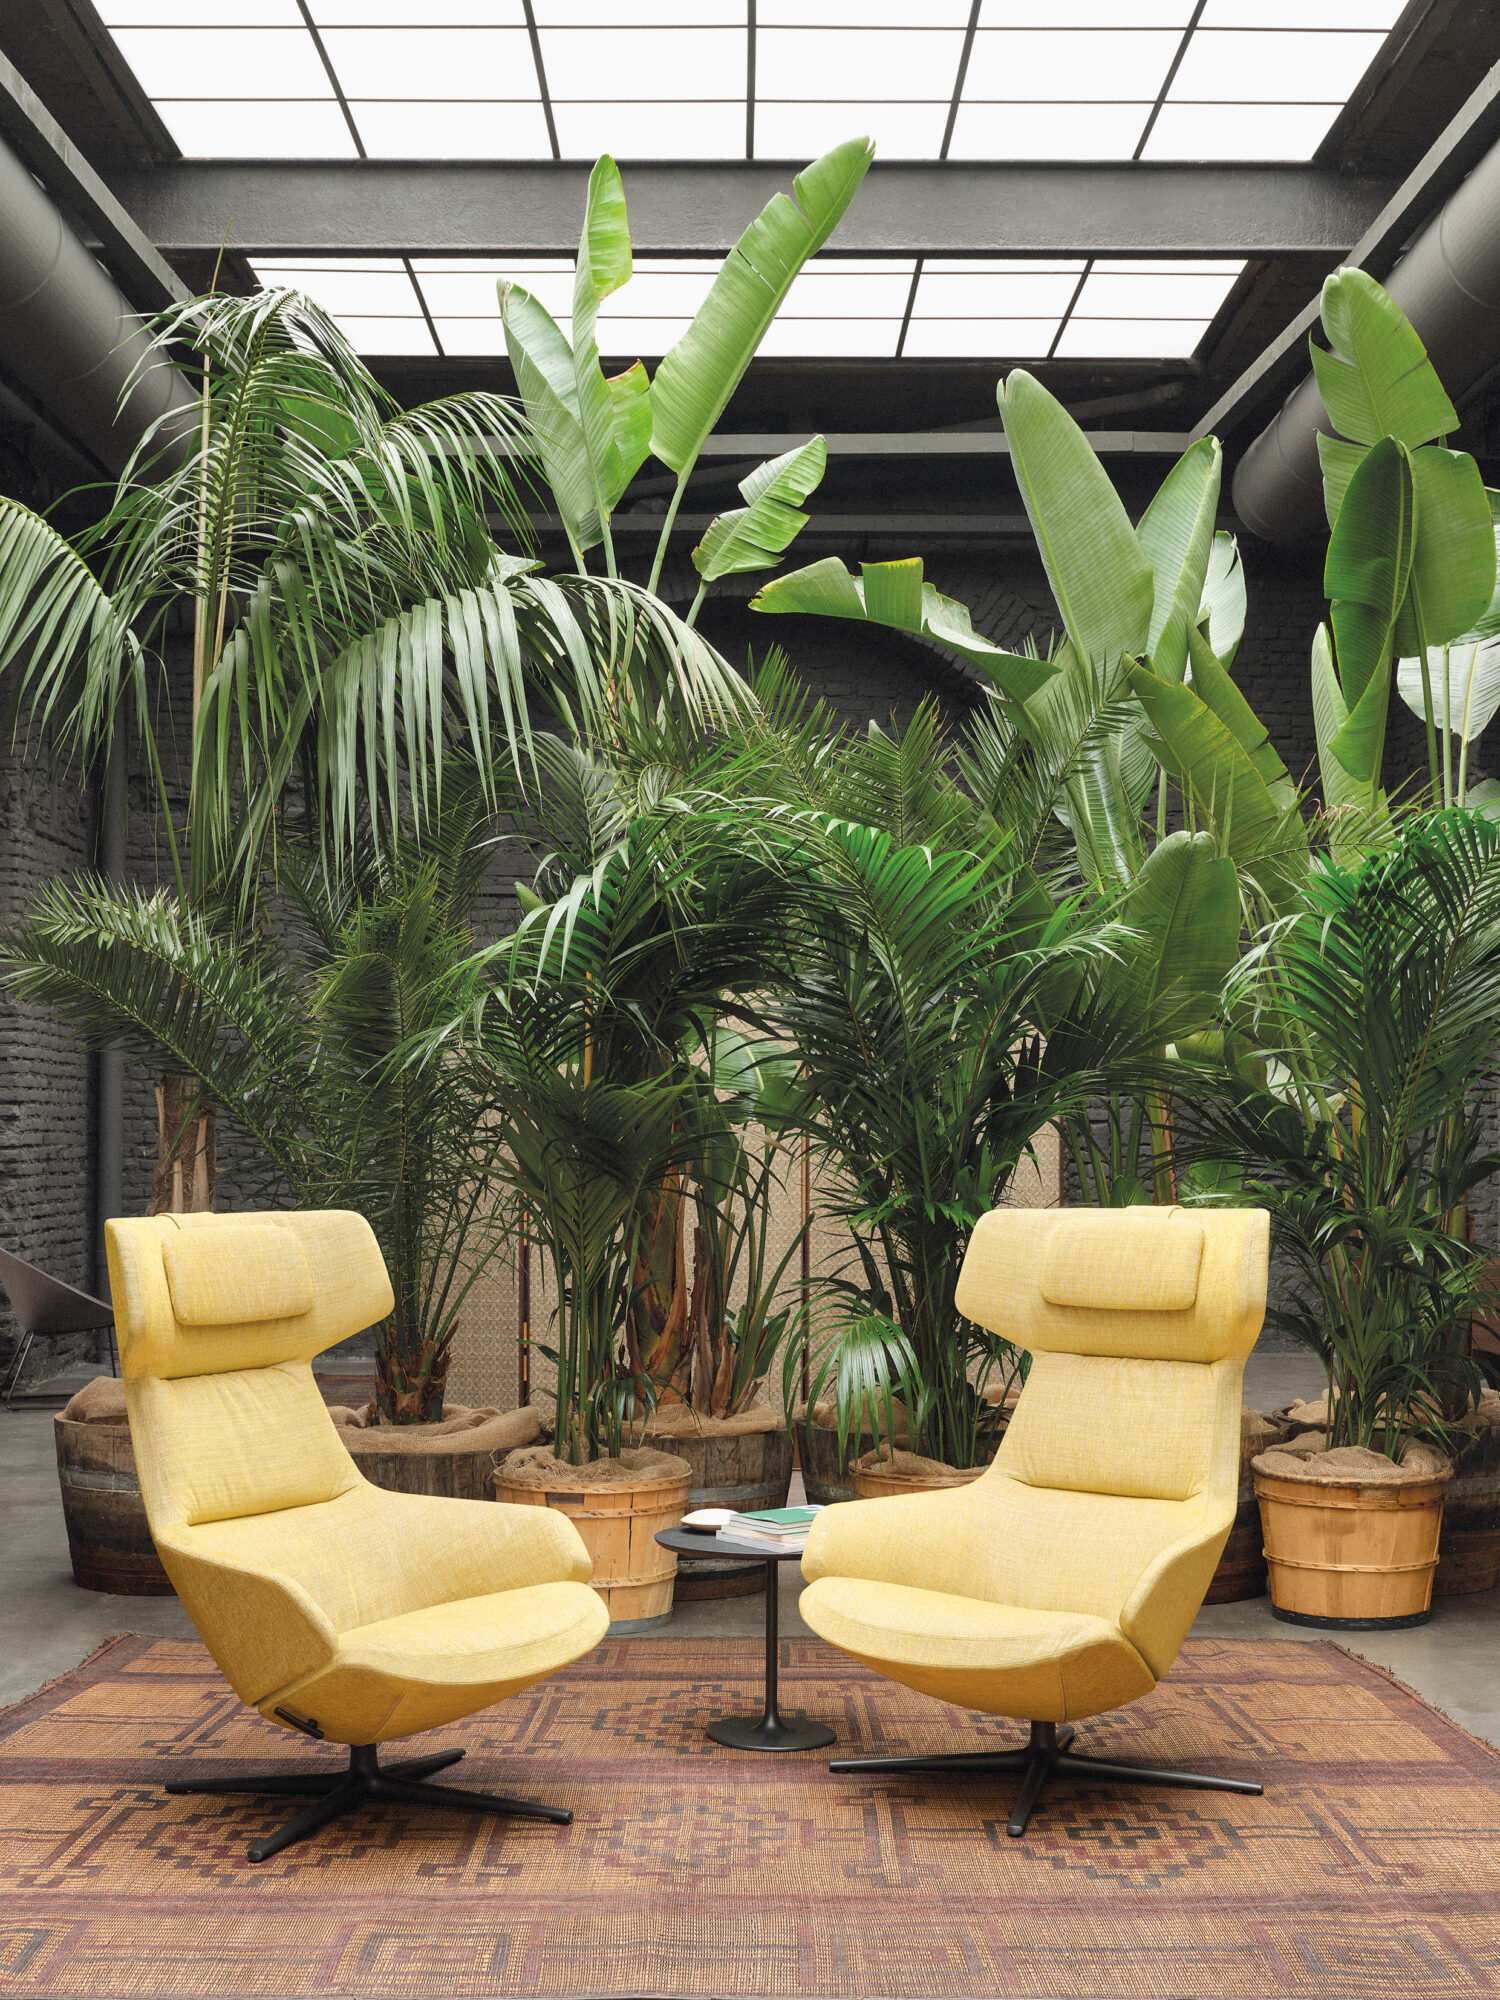 photo of two yellow chairs in front of plants